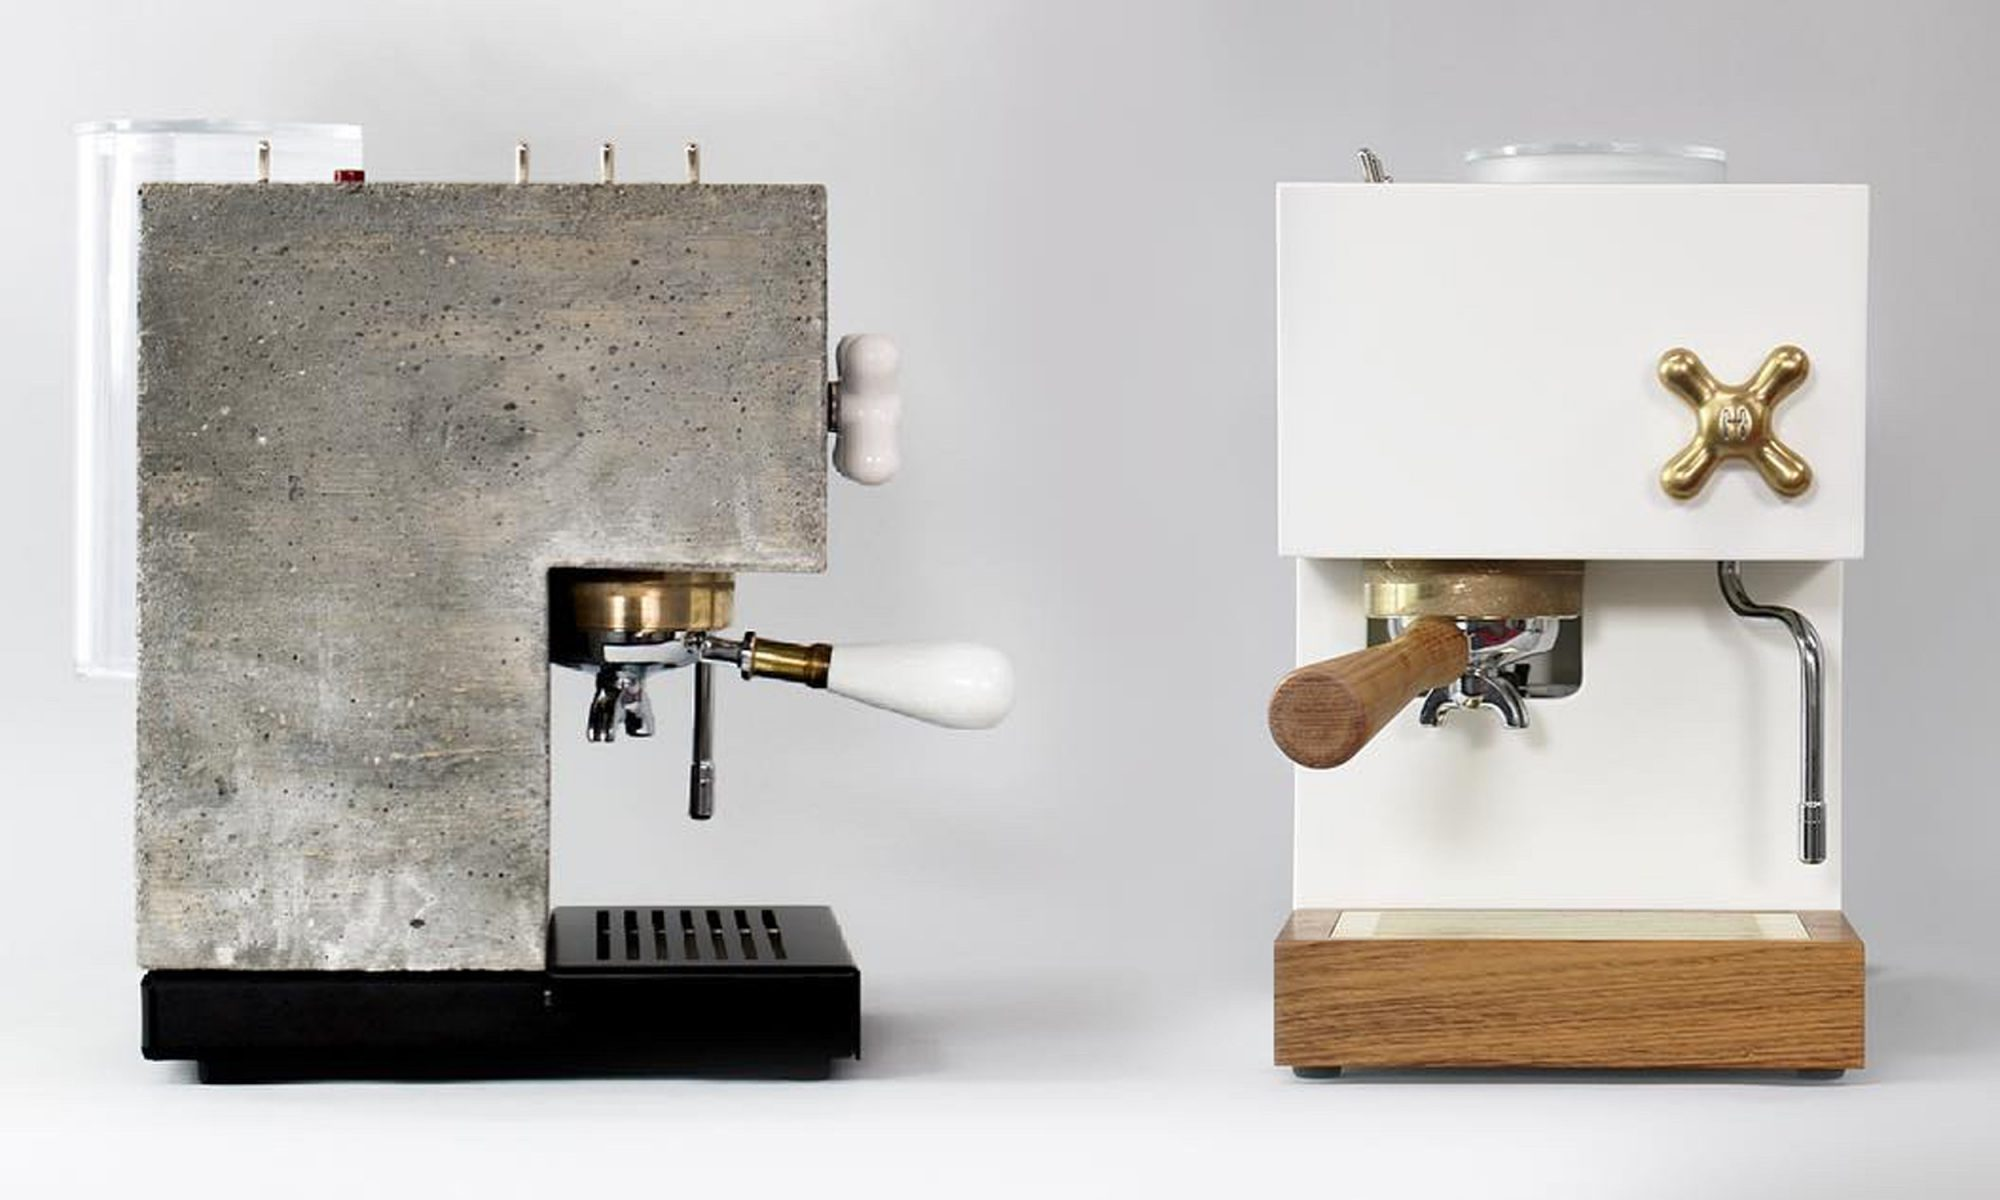 anza brutalist coffee maker